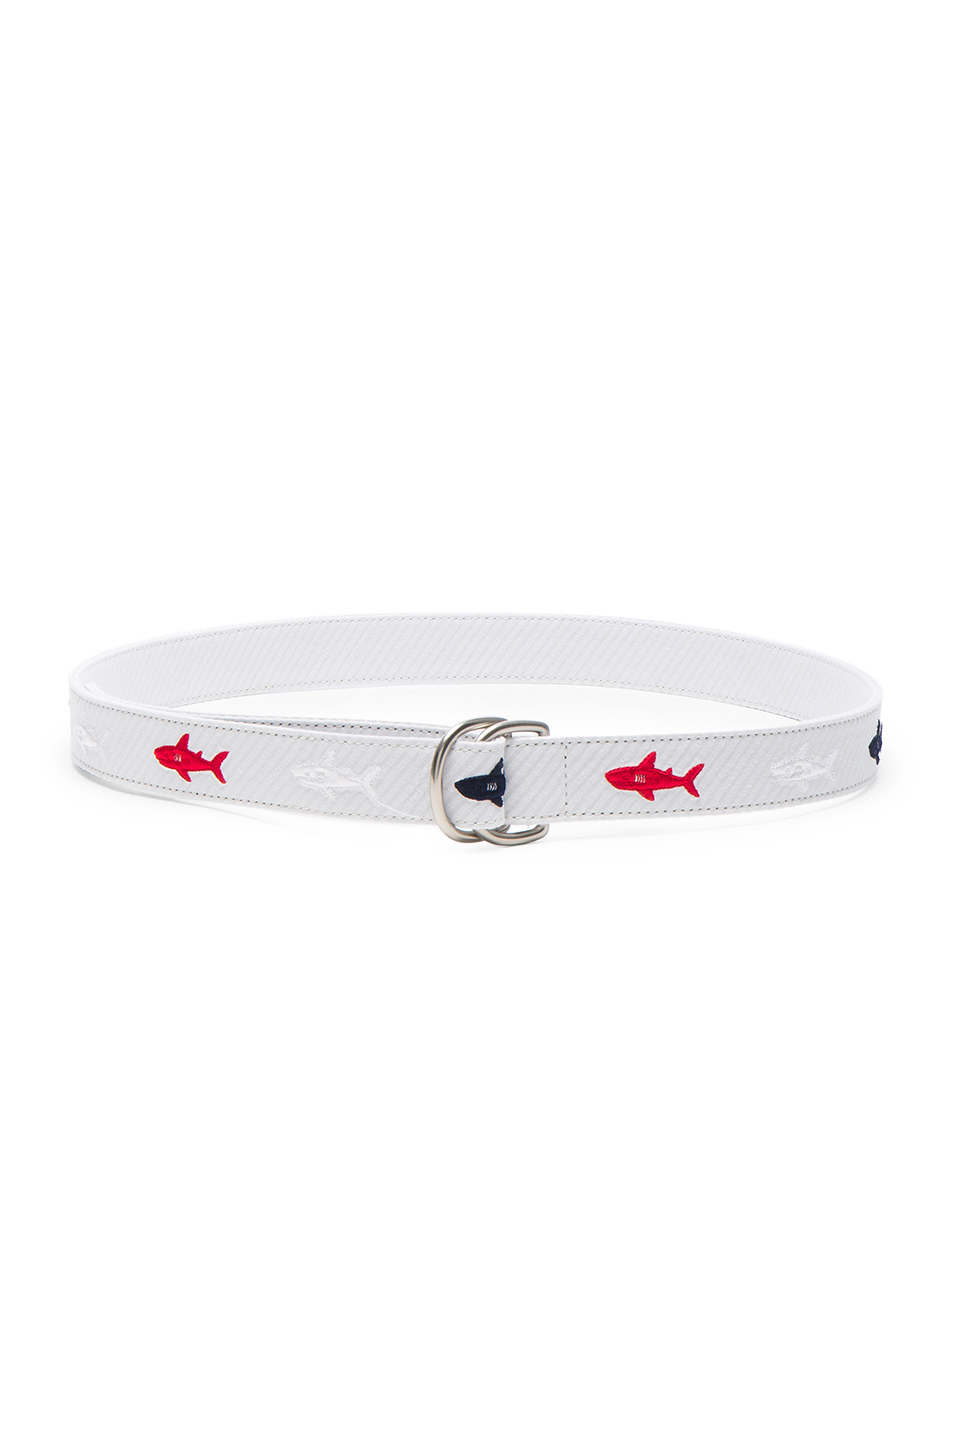 Thom Browne Shark Embroidered Seersucker Belt in White